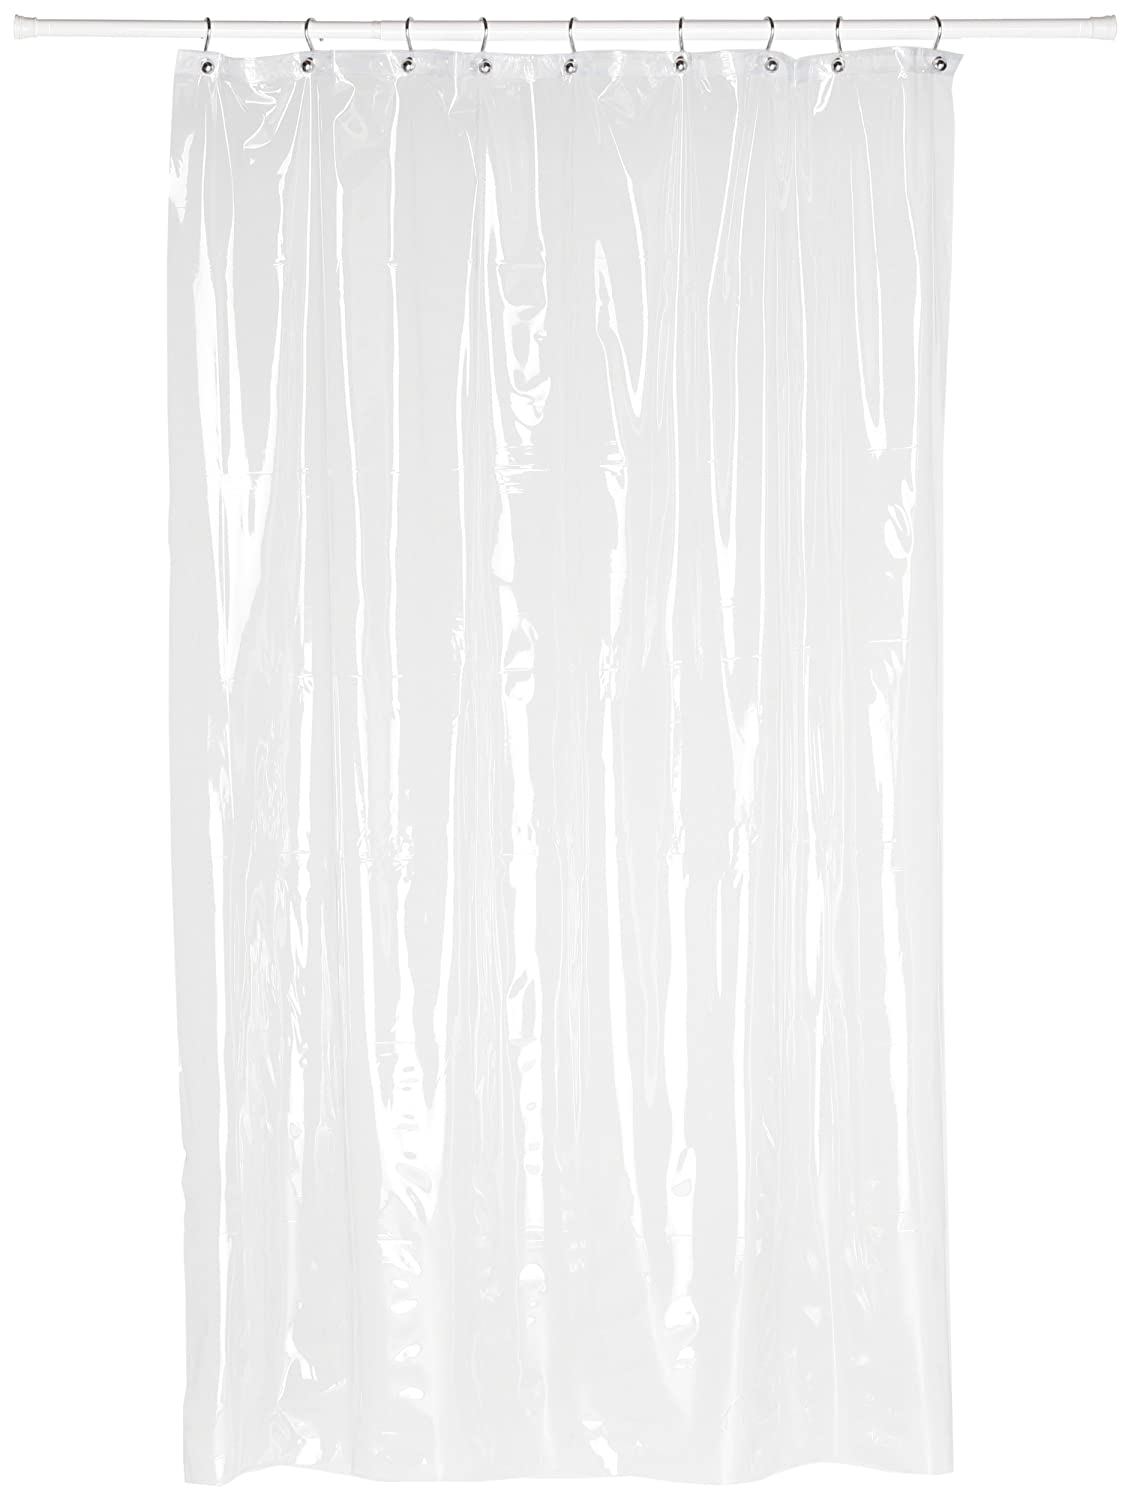 Carnation Home Fashions Shower Curtains Carnation Home Fashions Super